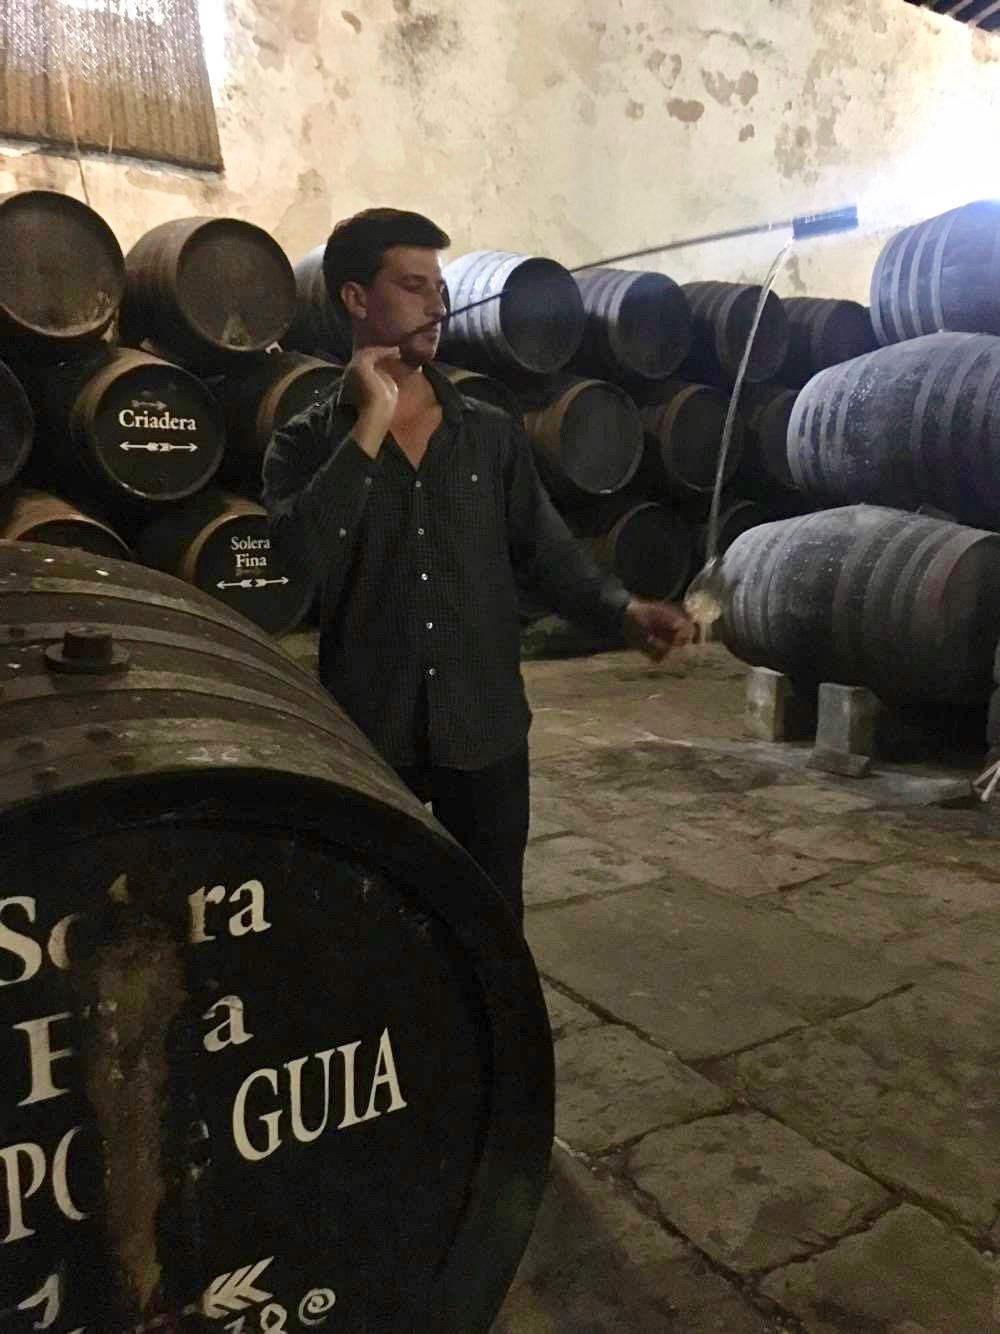 Jack tasting wine out of the barrel at Bodega Gutierrez-Colosia in El Puerto de Santa Maria, Spain. He was there to meet the family behind the winery and vet the wines for his wine bar in Charleston, South Carolina.